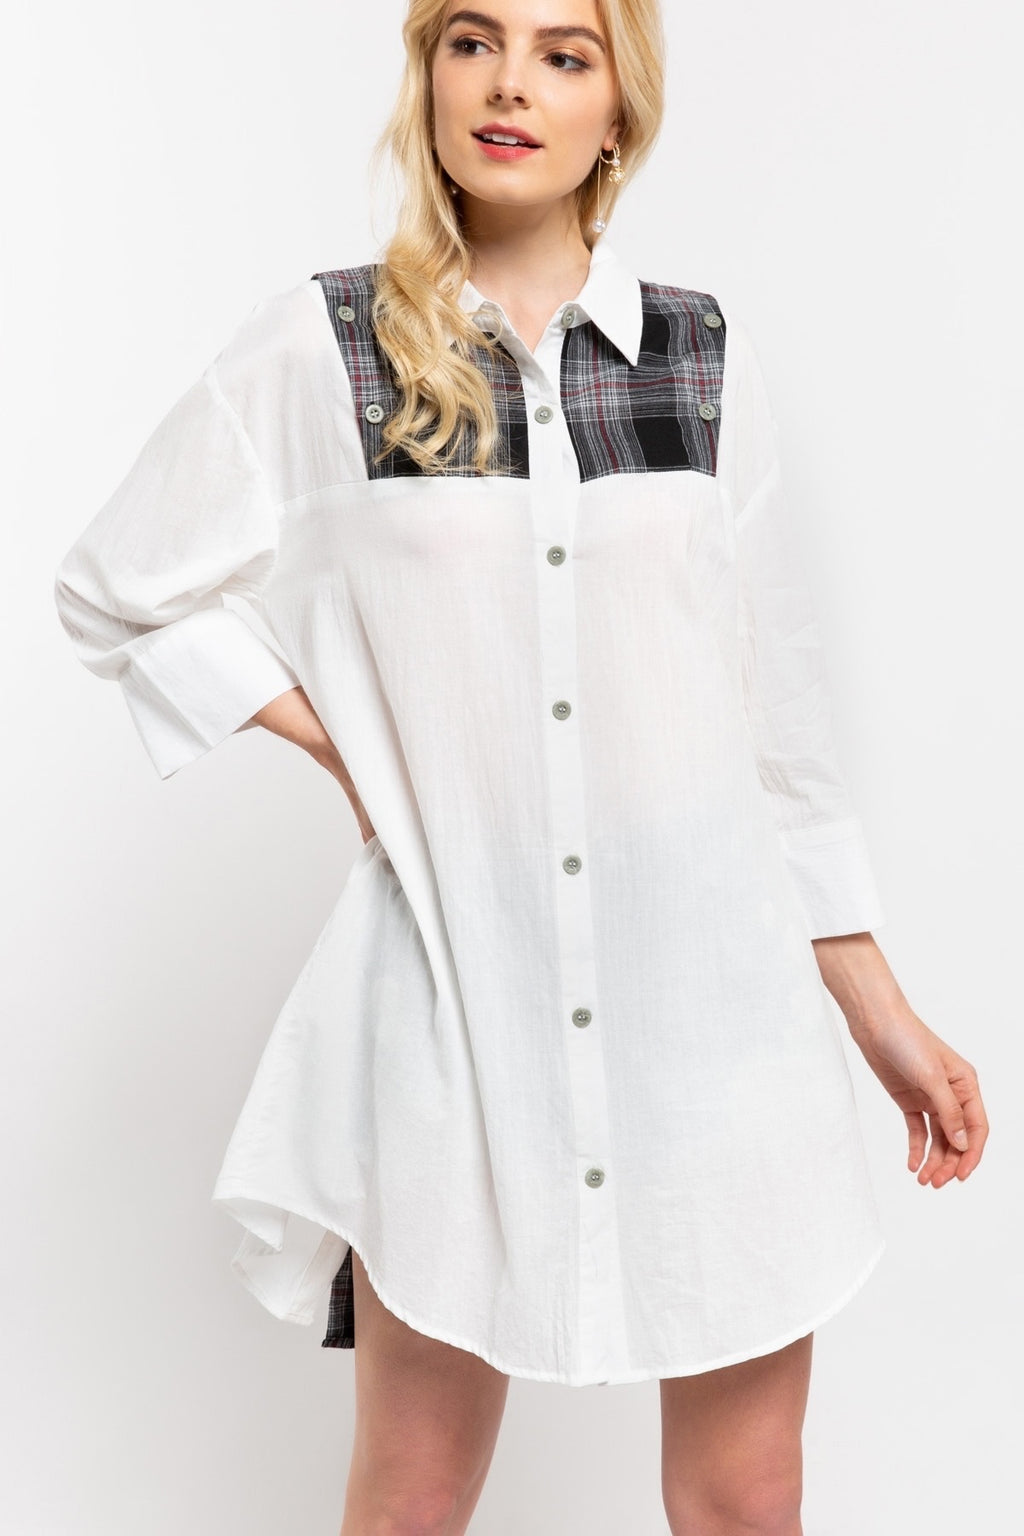 Buttoned Up Tunic